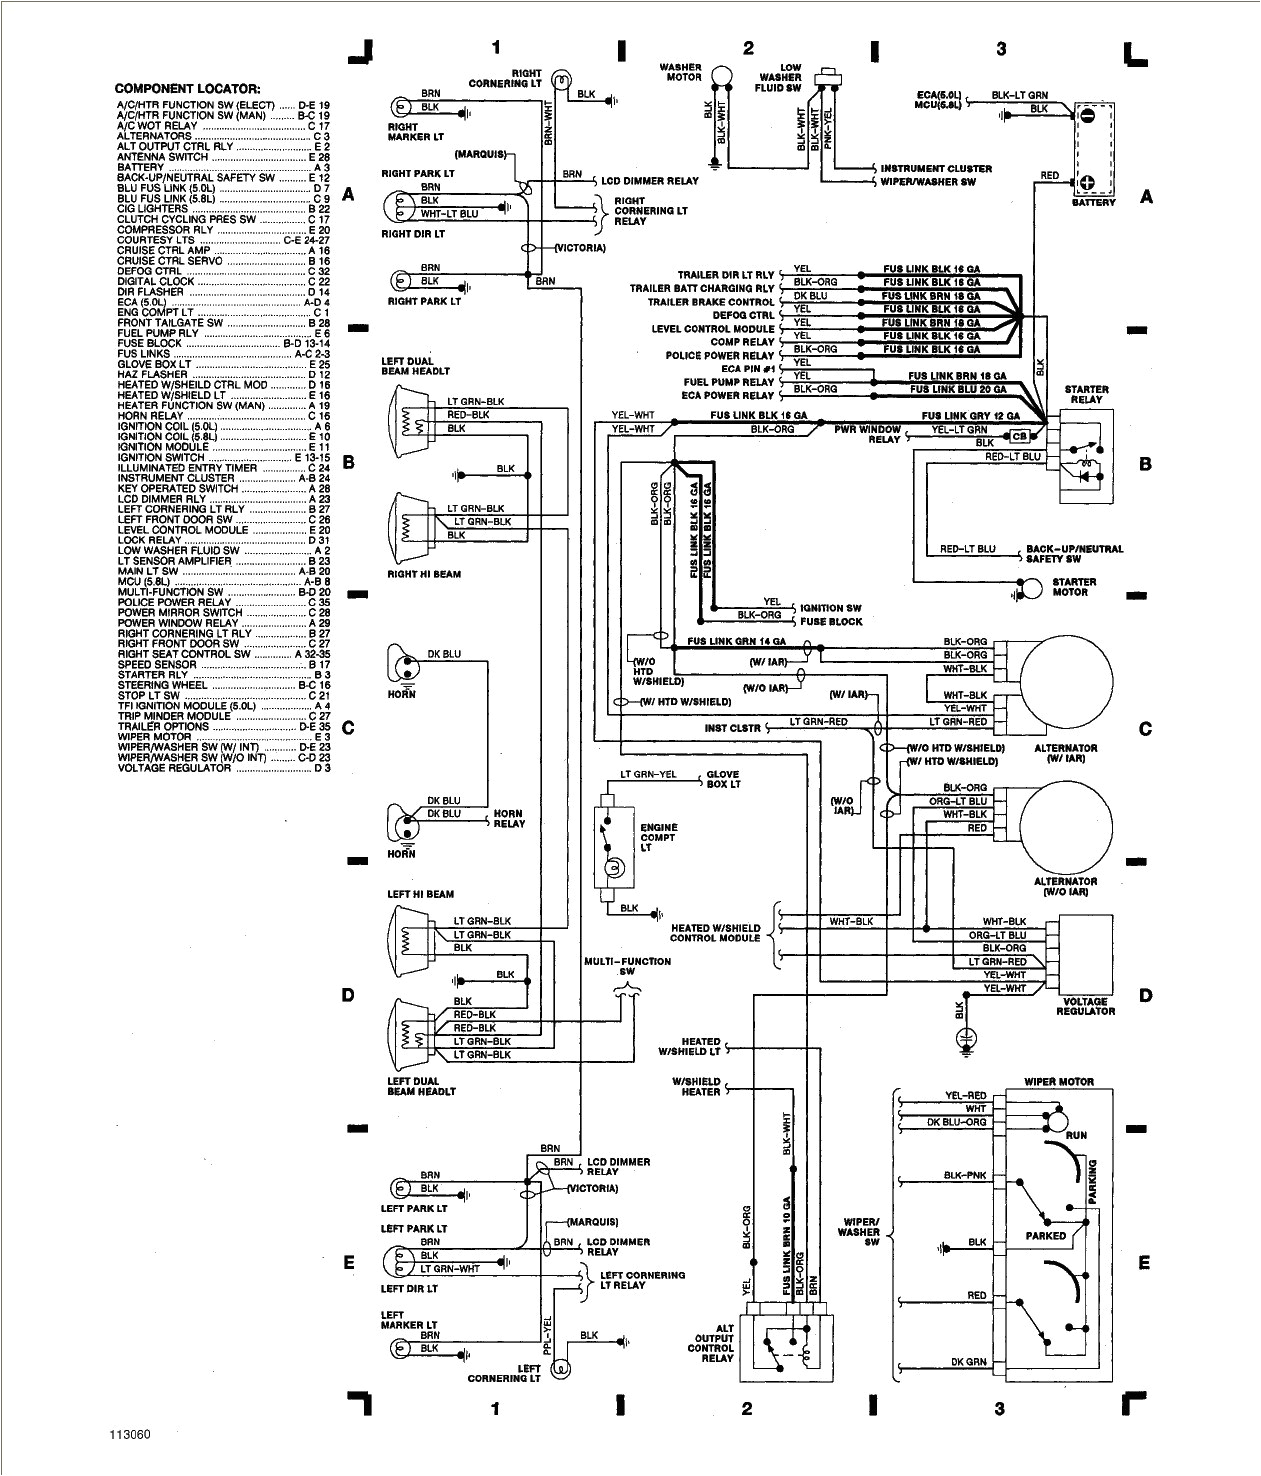 2001 GRAND MARQUIS WIRING DIAGRAM - Auto Electrical Wiring ...